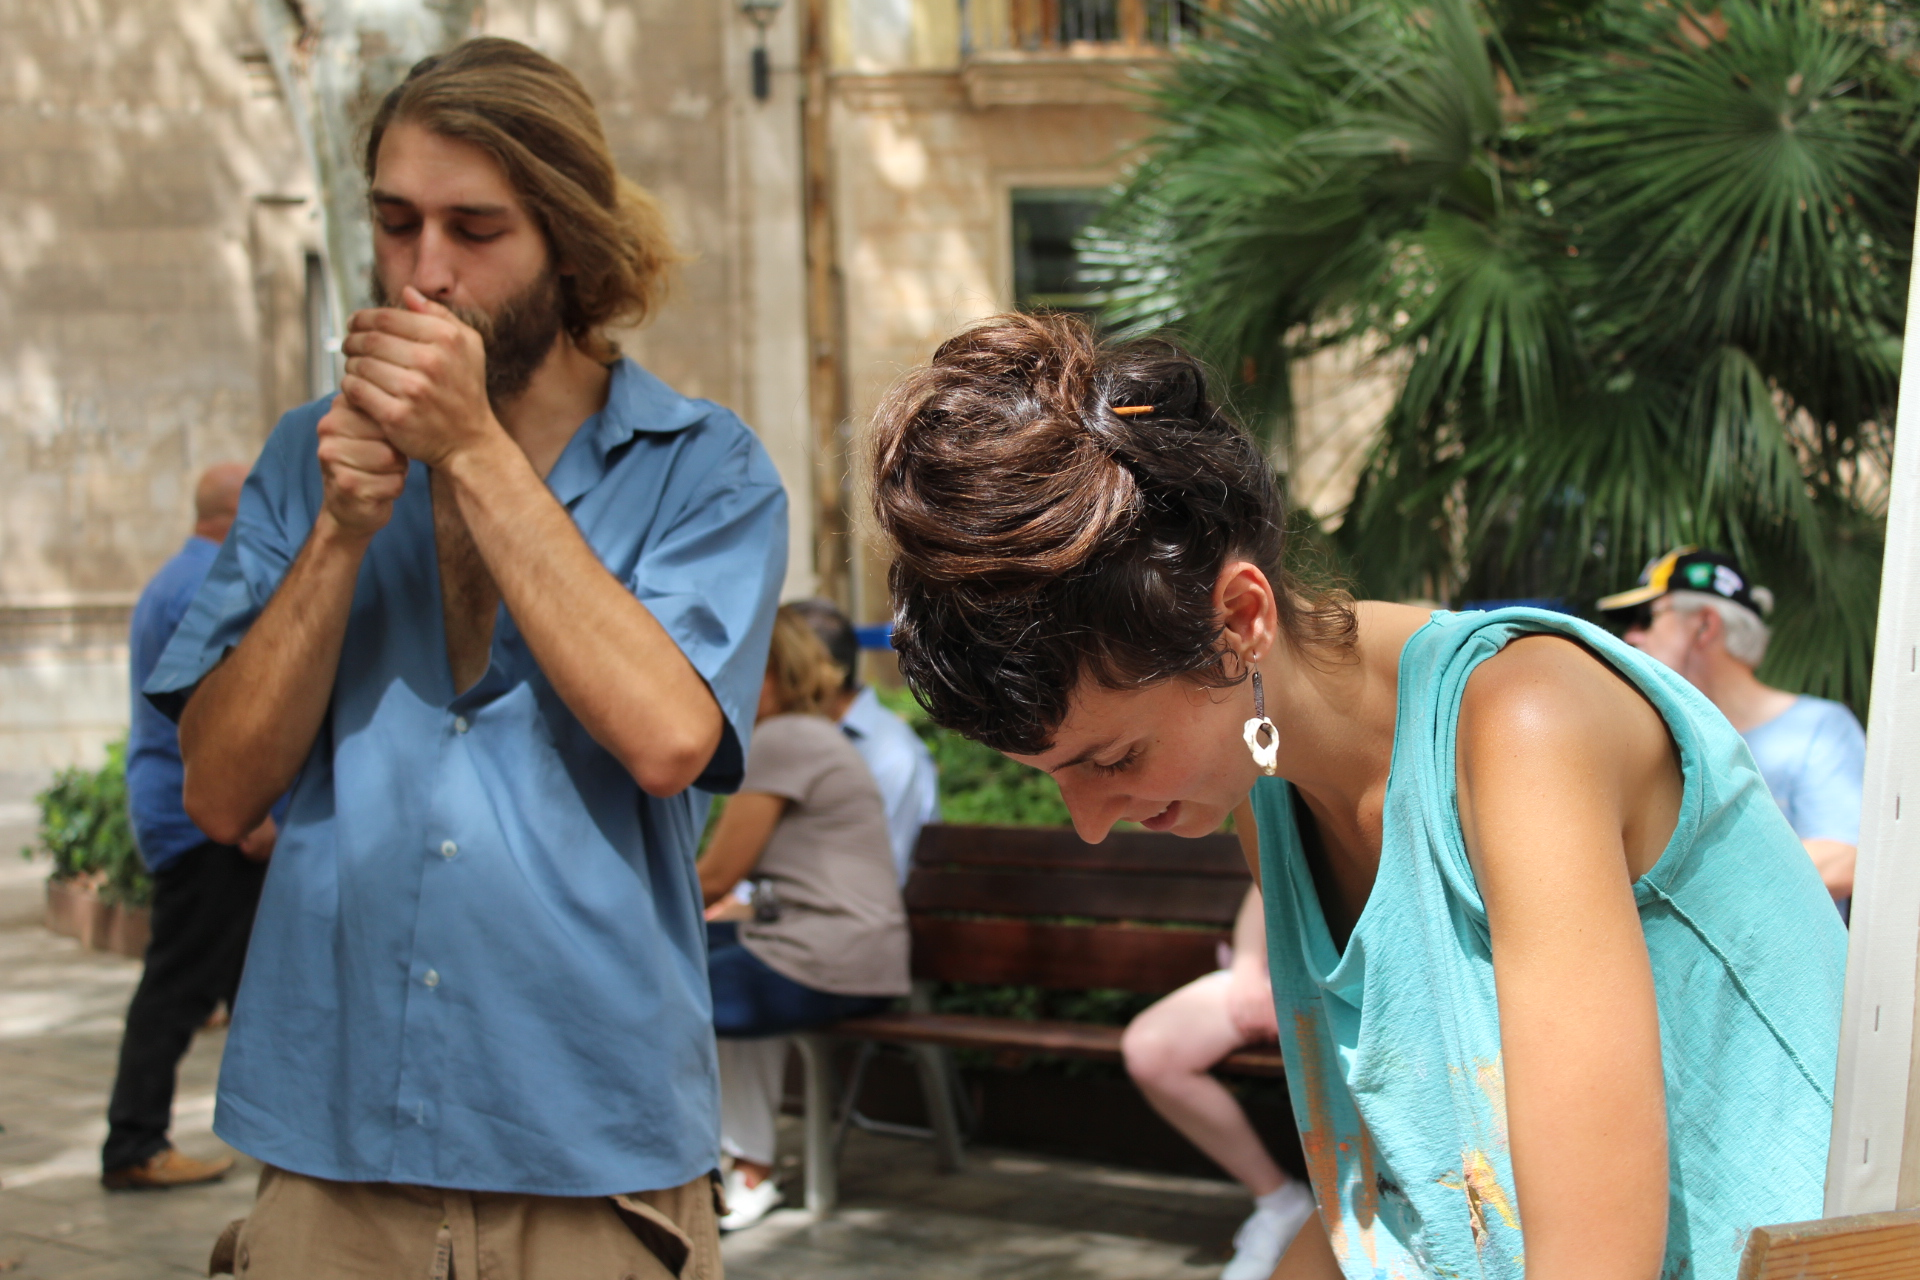 Artists in Palma, Mallorca